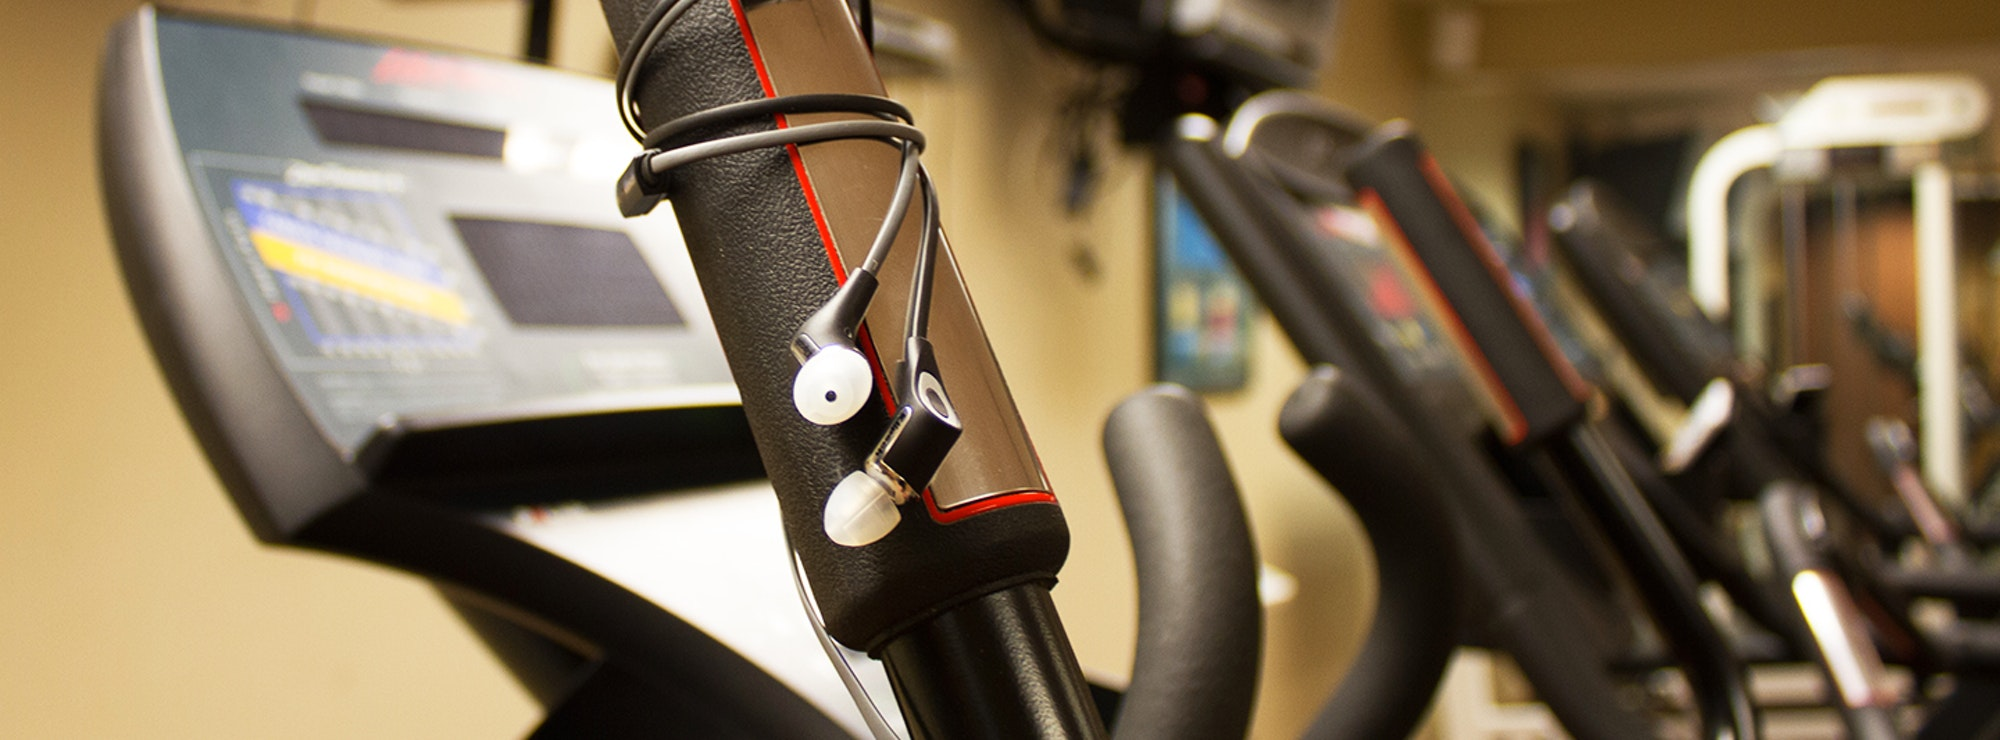 Klipsch in ear headphones wrapped around the handle of workout equipment